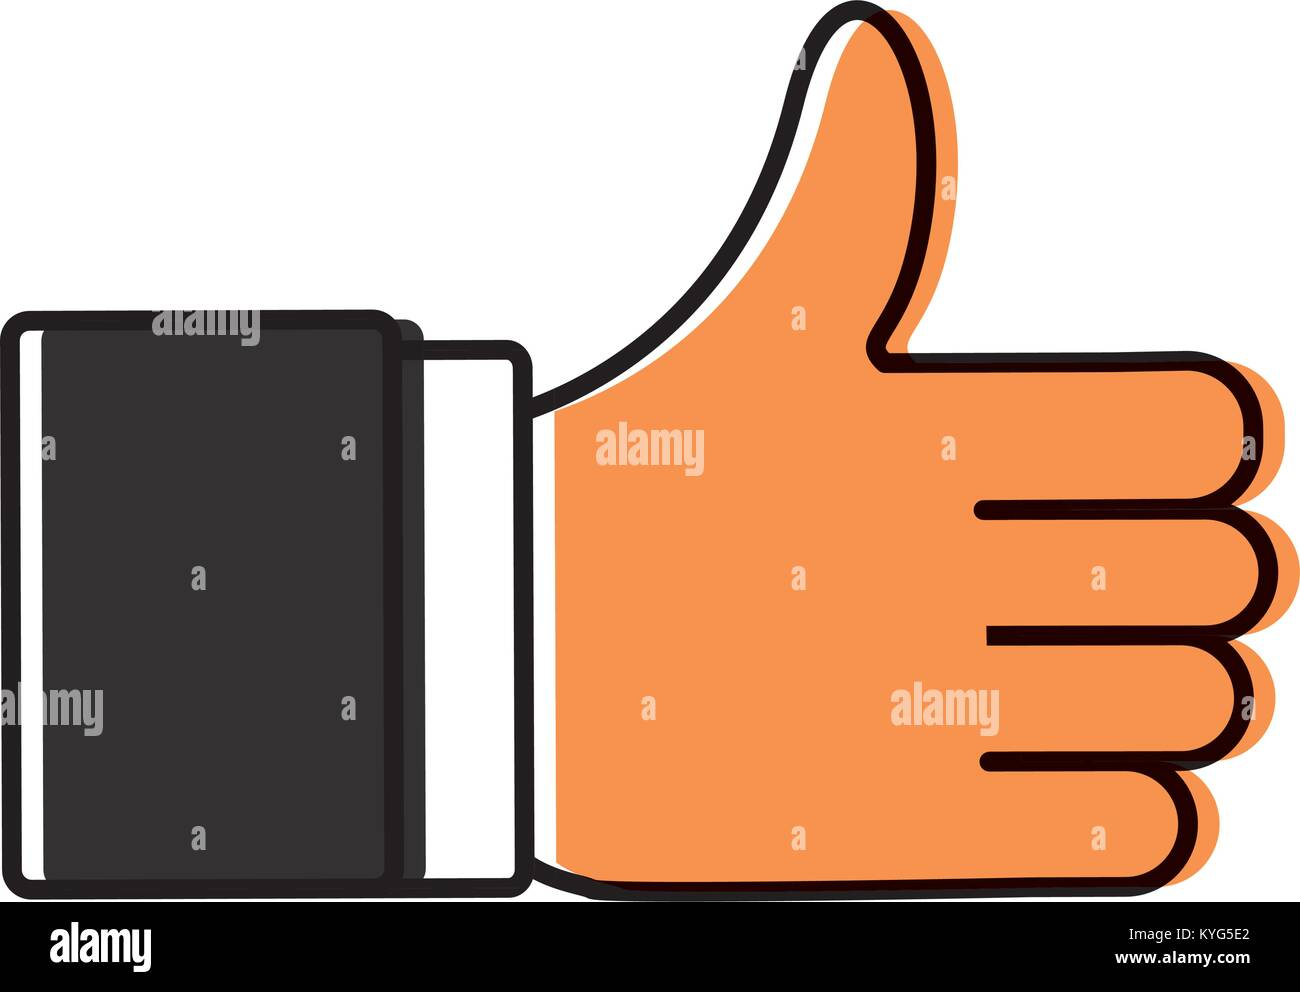 Thumb up like symbol stock vector art illustration vector image thumb up like symbol buycottarizona Choice Image